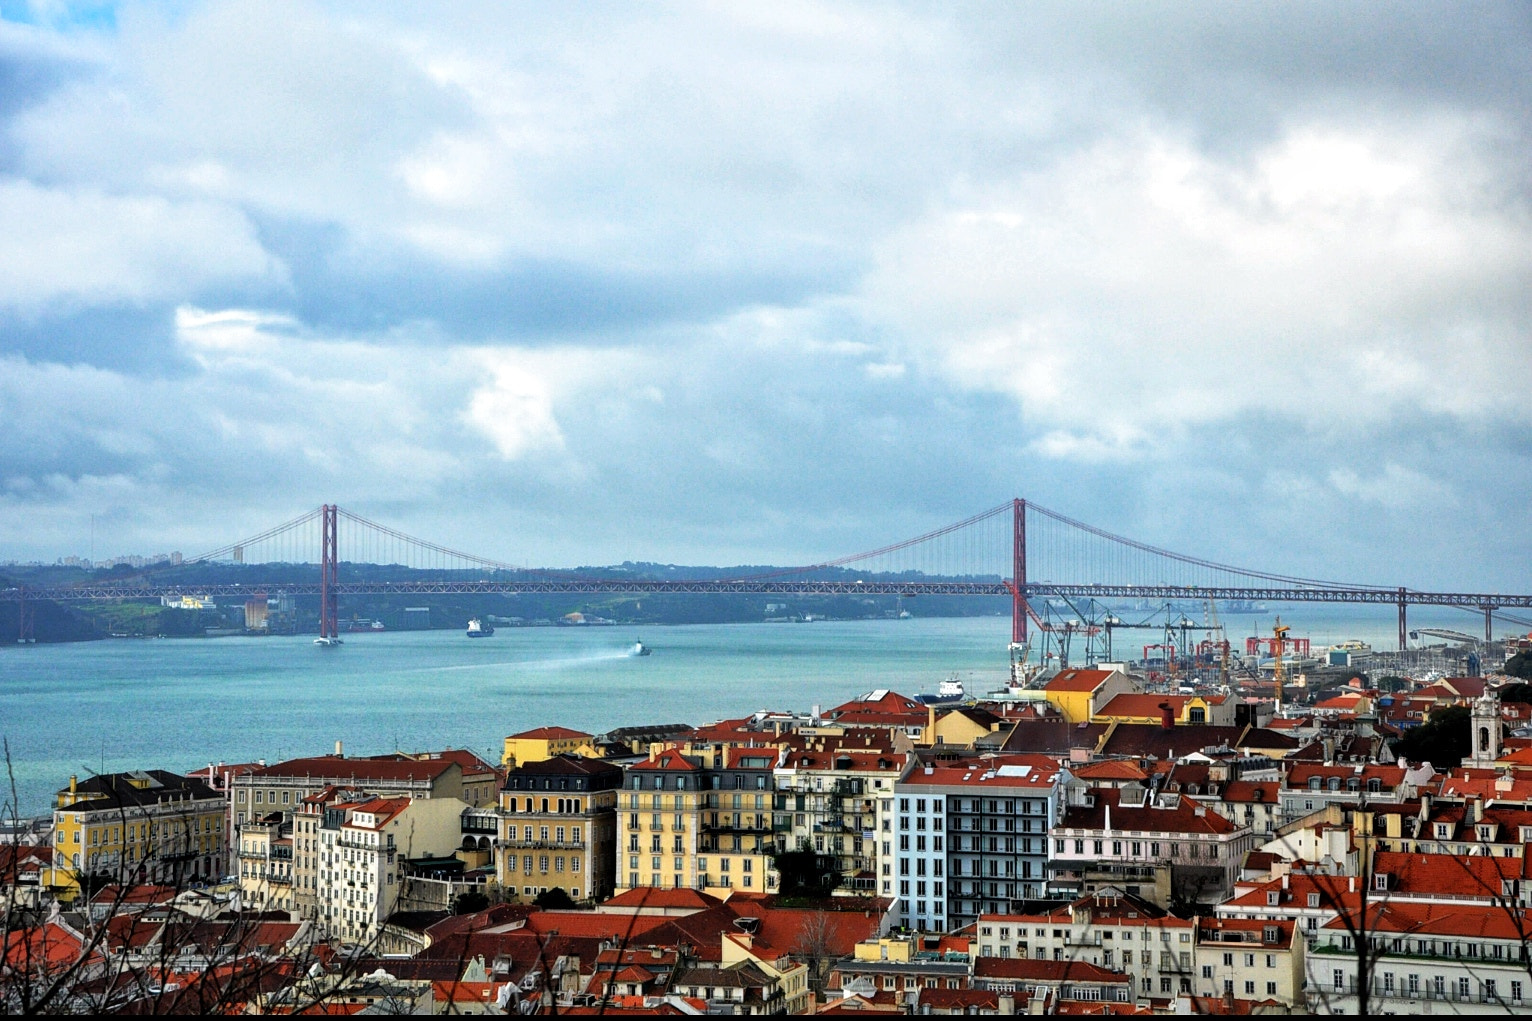 Photograph 25th of April Bridge by Elif Energin on 500px